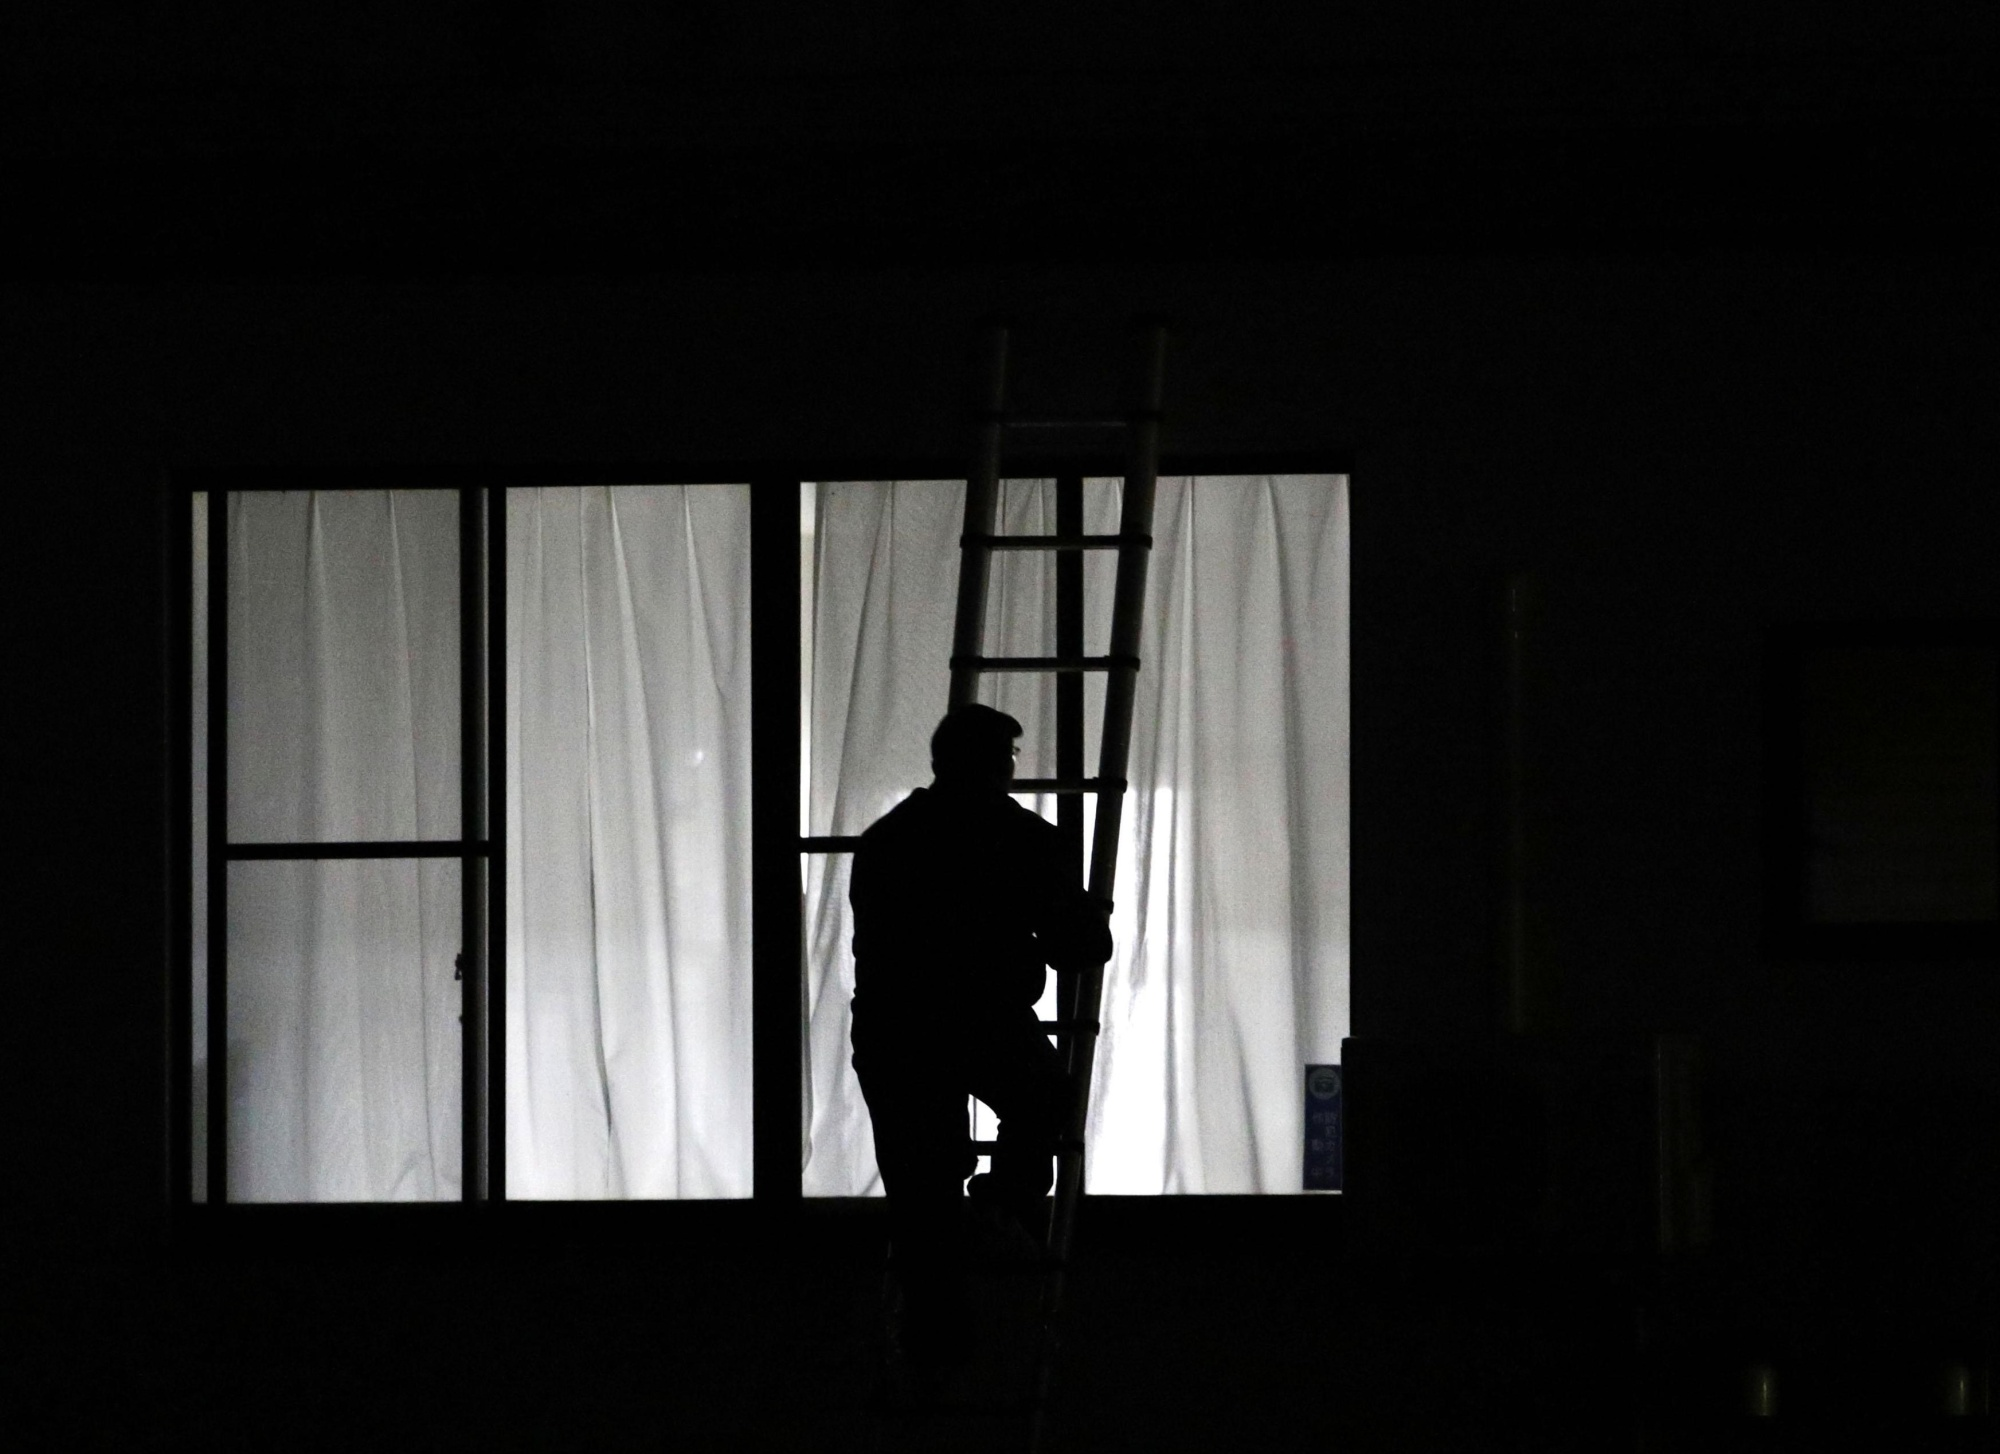 An investigator climbs a ladder early Wednesday morning outside the headquarters of Ueda Cold Corp. in Izumo, Shimane Prefecture, after a man barricaded himself in and took a female employee hostage.   KYODO